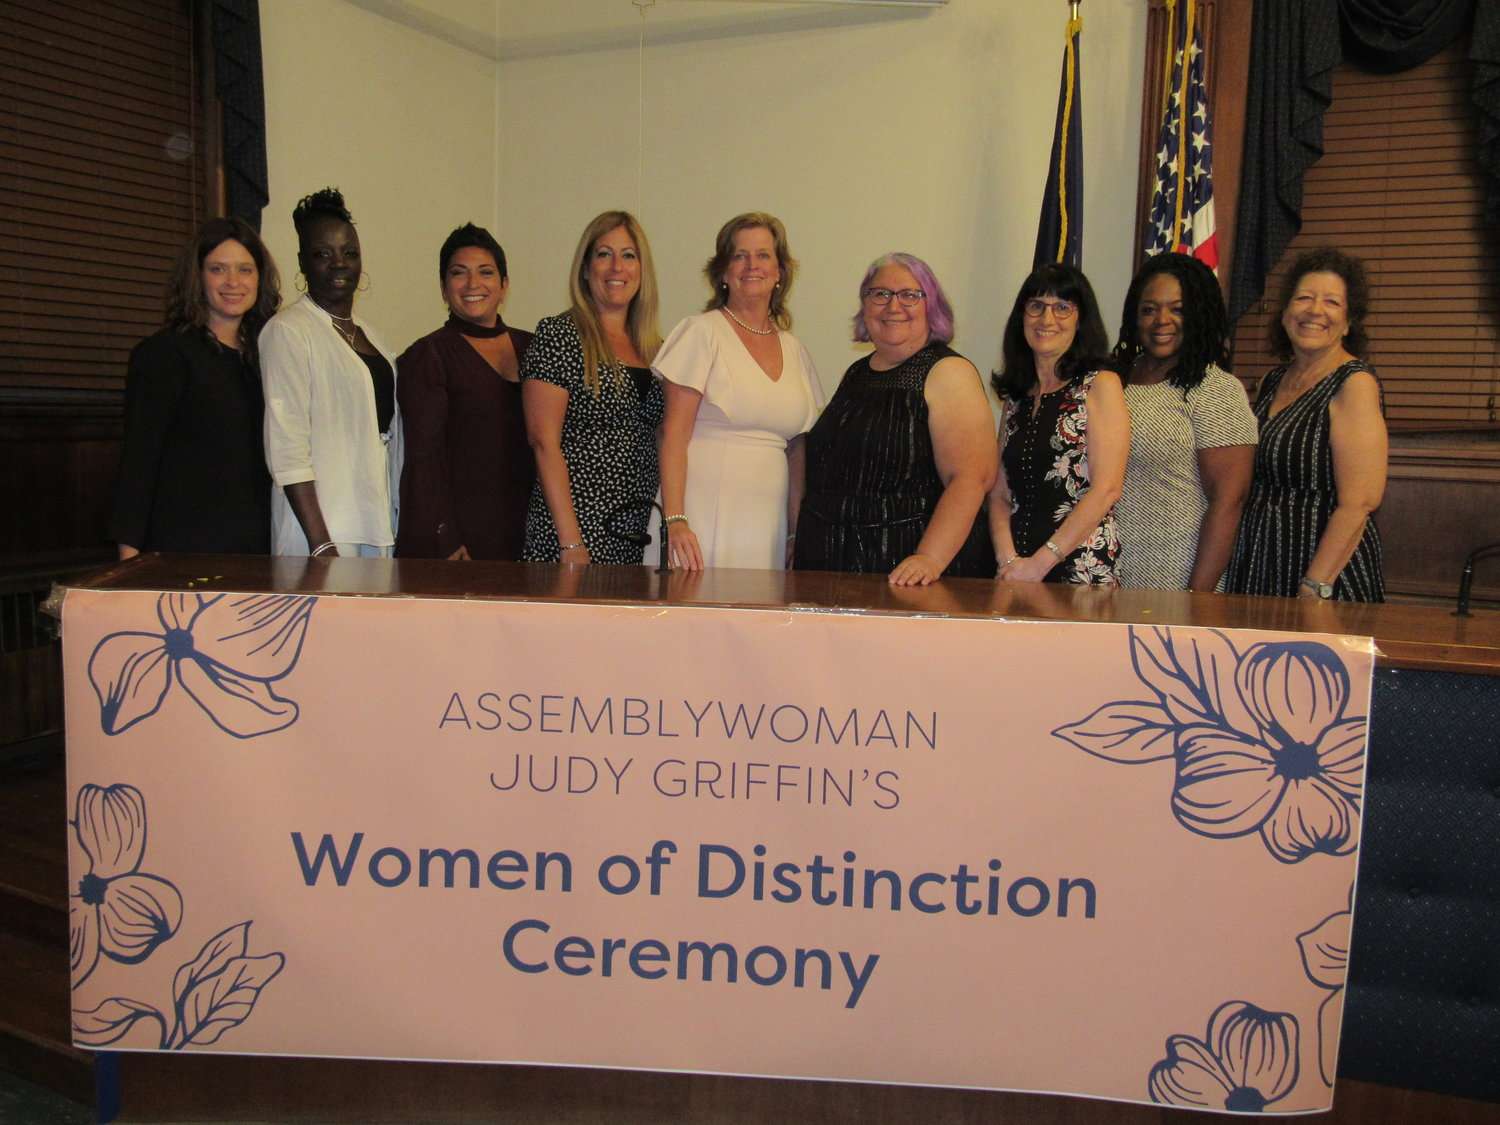 Women throughout different parts of Long Island were honored by State Assemblywoman Judy Griffin during her inaugural Women of Distinction awards ceremony on Aug. 7.